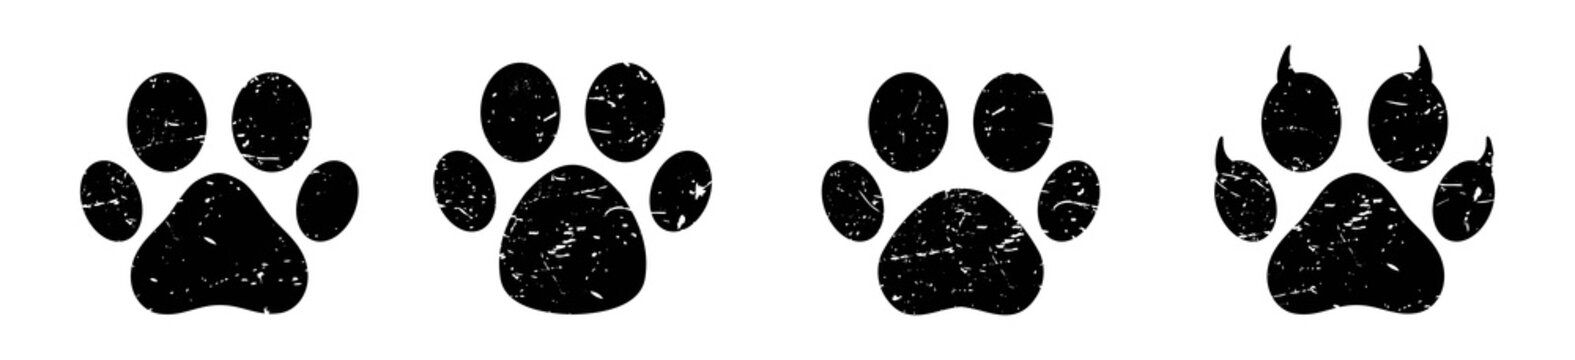 Different animal paw print icon,  cat or dog paw print, vector illustrations